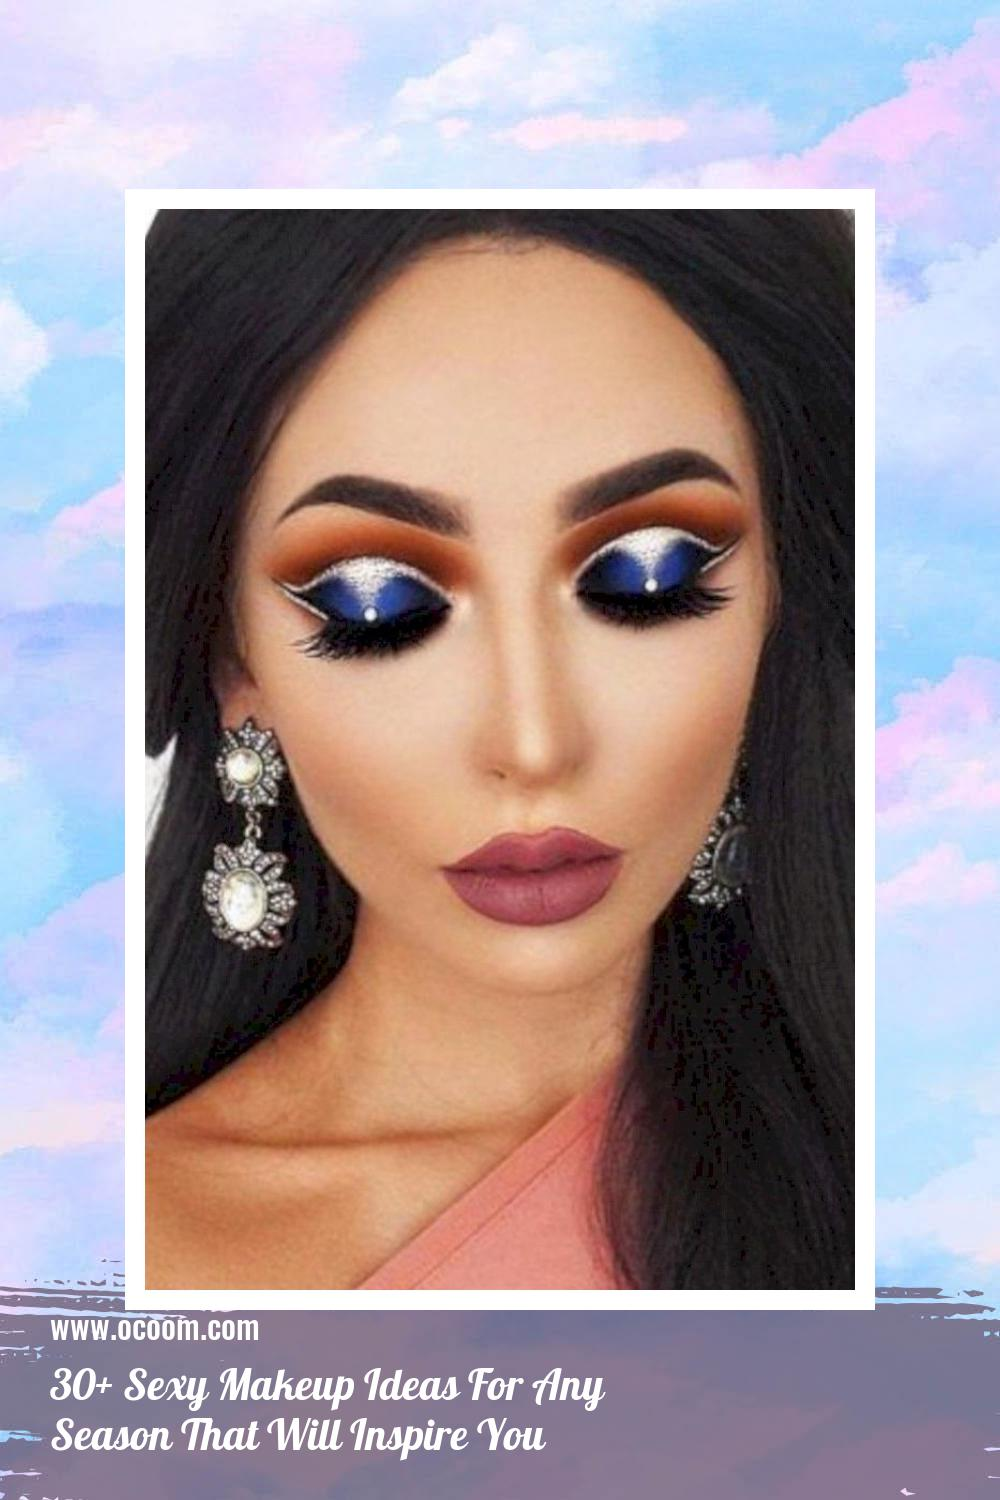 30+ Sexy Makeup Ideas For Any Season That Will Inspire You 13